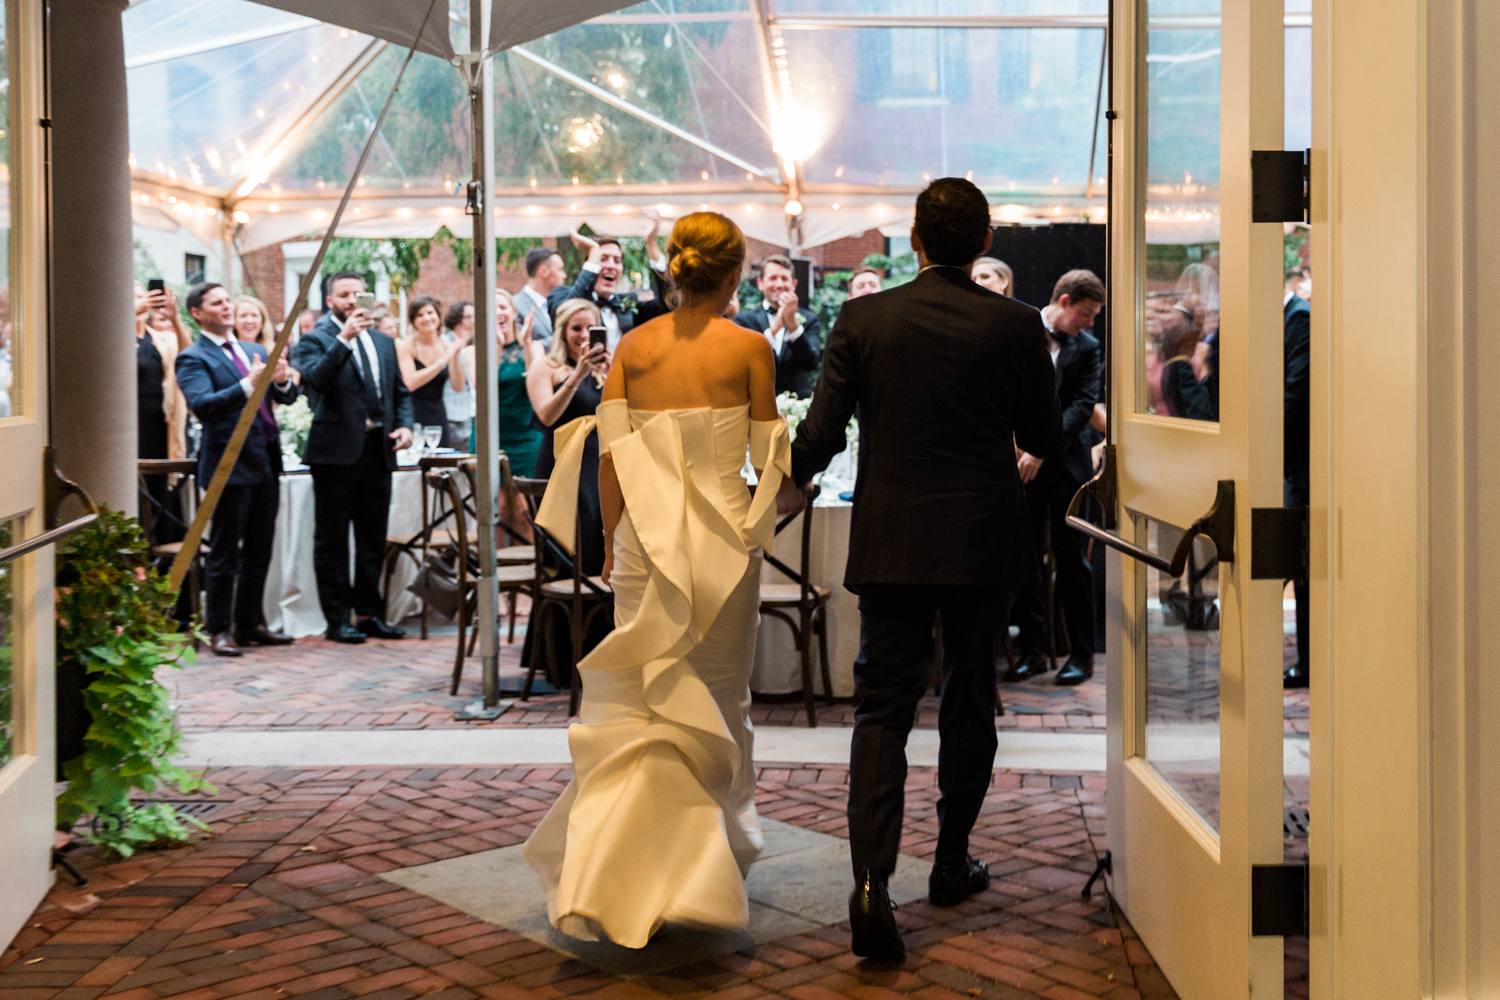 Georgetown wedding - Classic DC reception at Decatur House